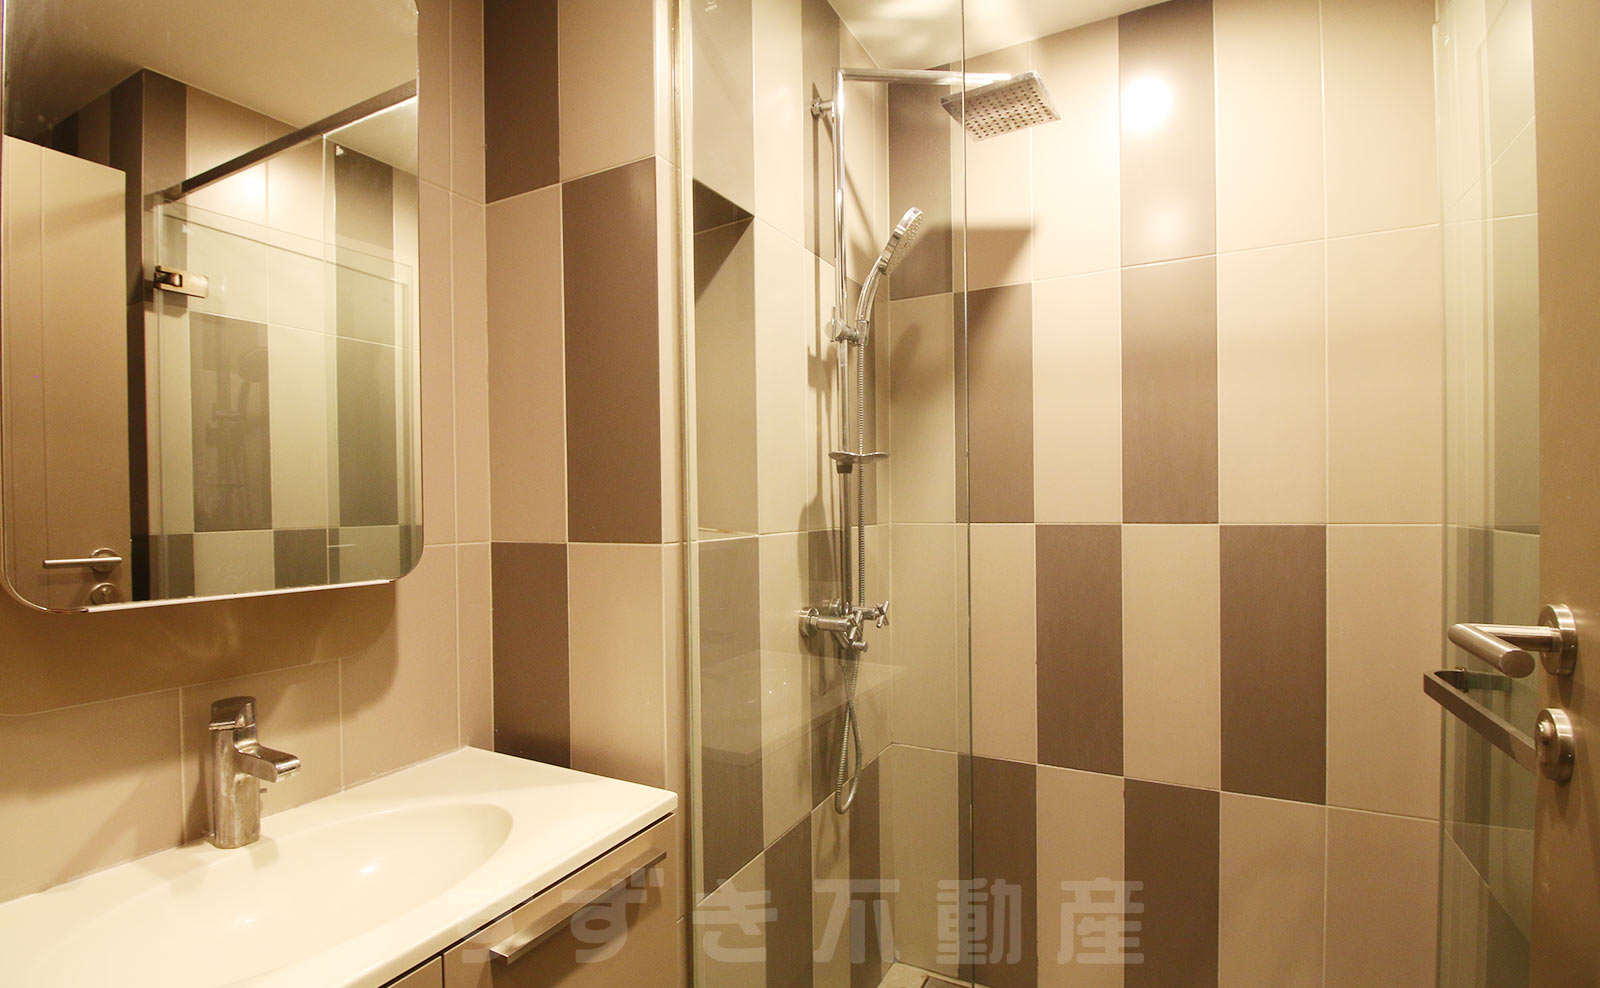 Teal Sathorn-Taksin:1Bed Room Photos No.9